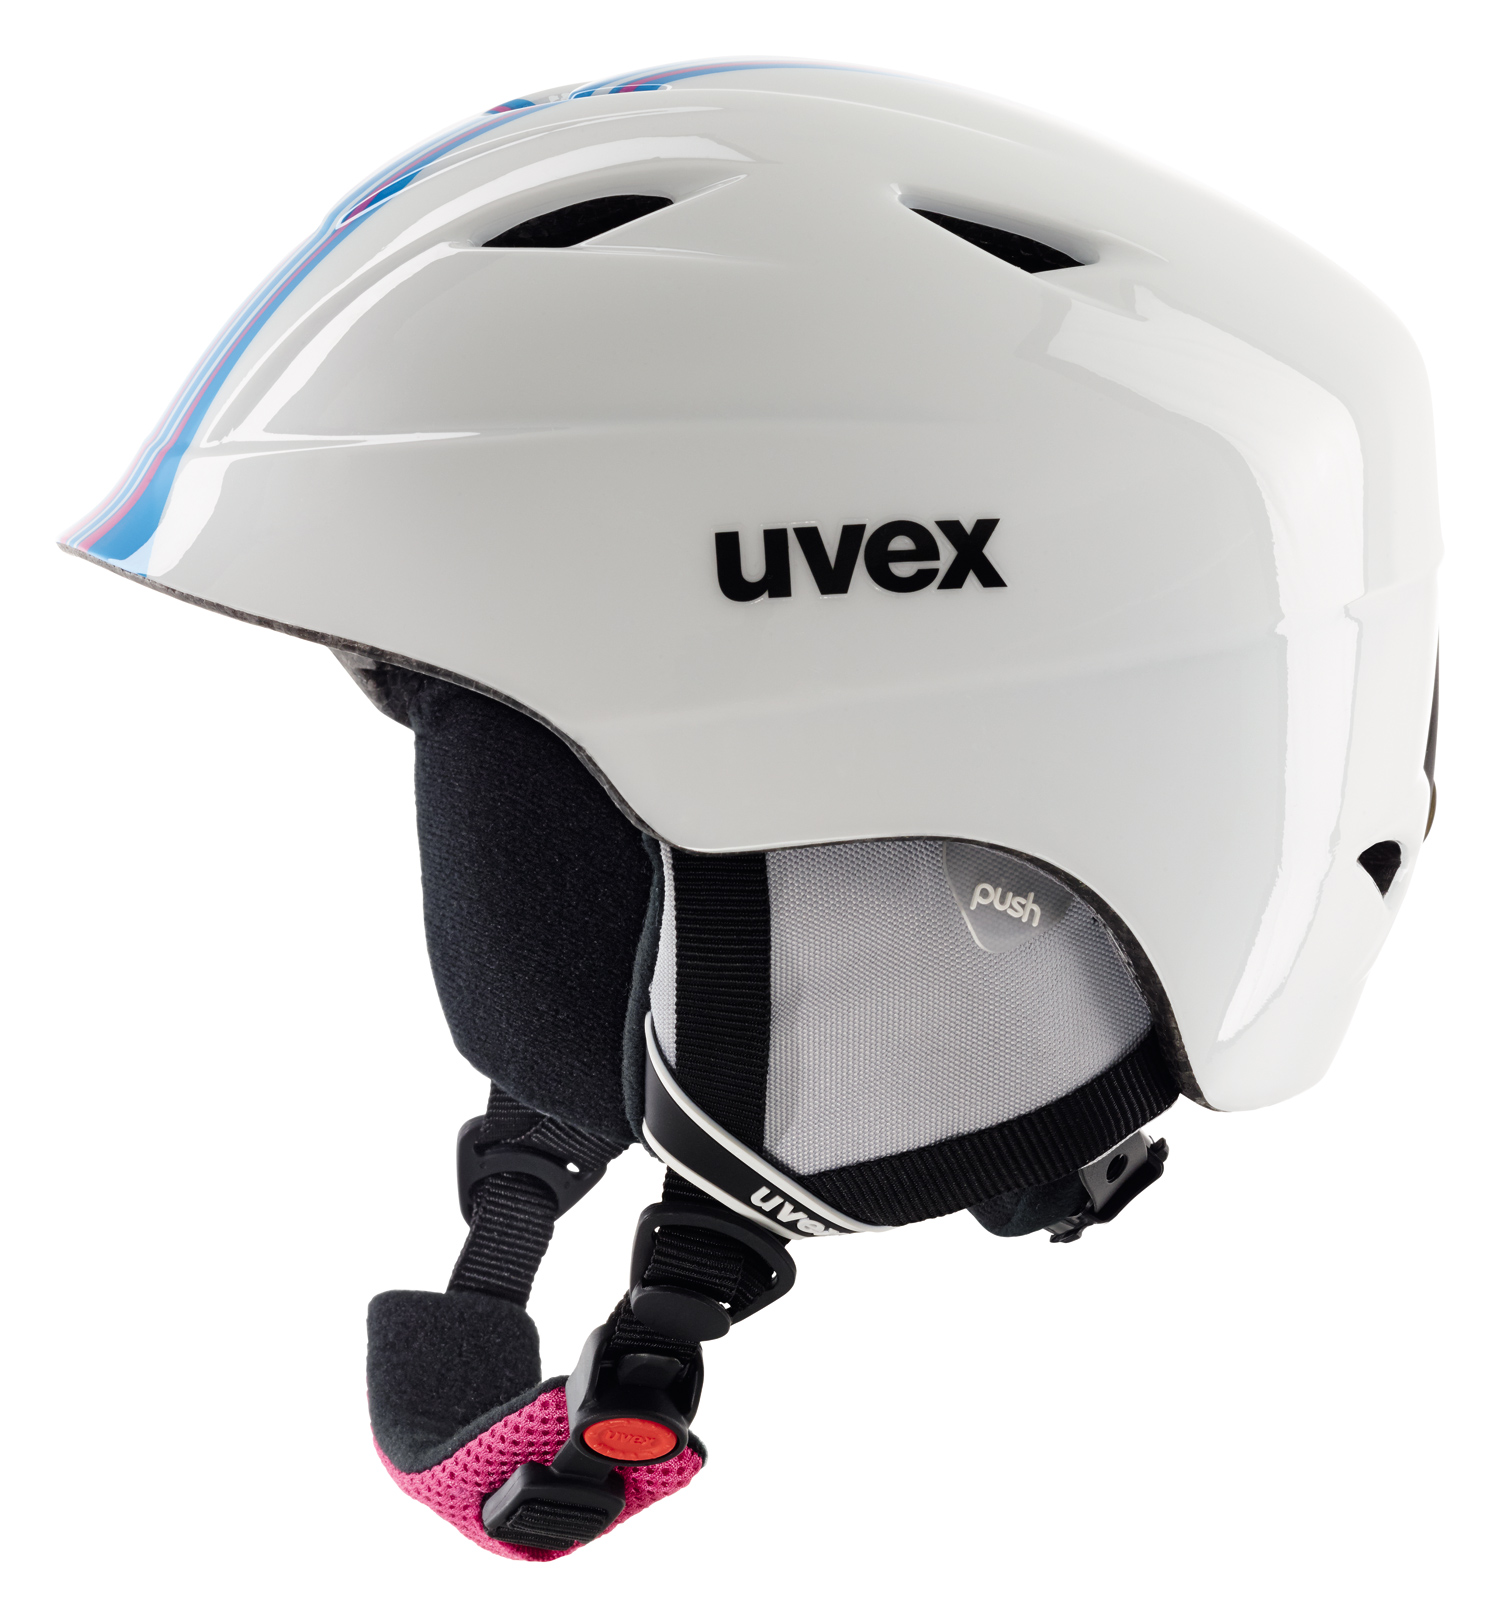 UVEX AIRWING 2 RACE, white-pink S566192190 16/17 48-52 cm